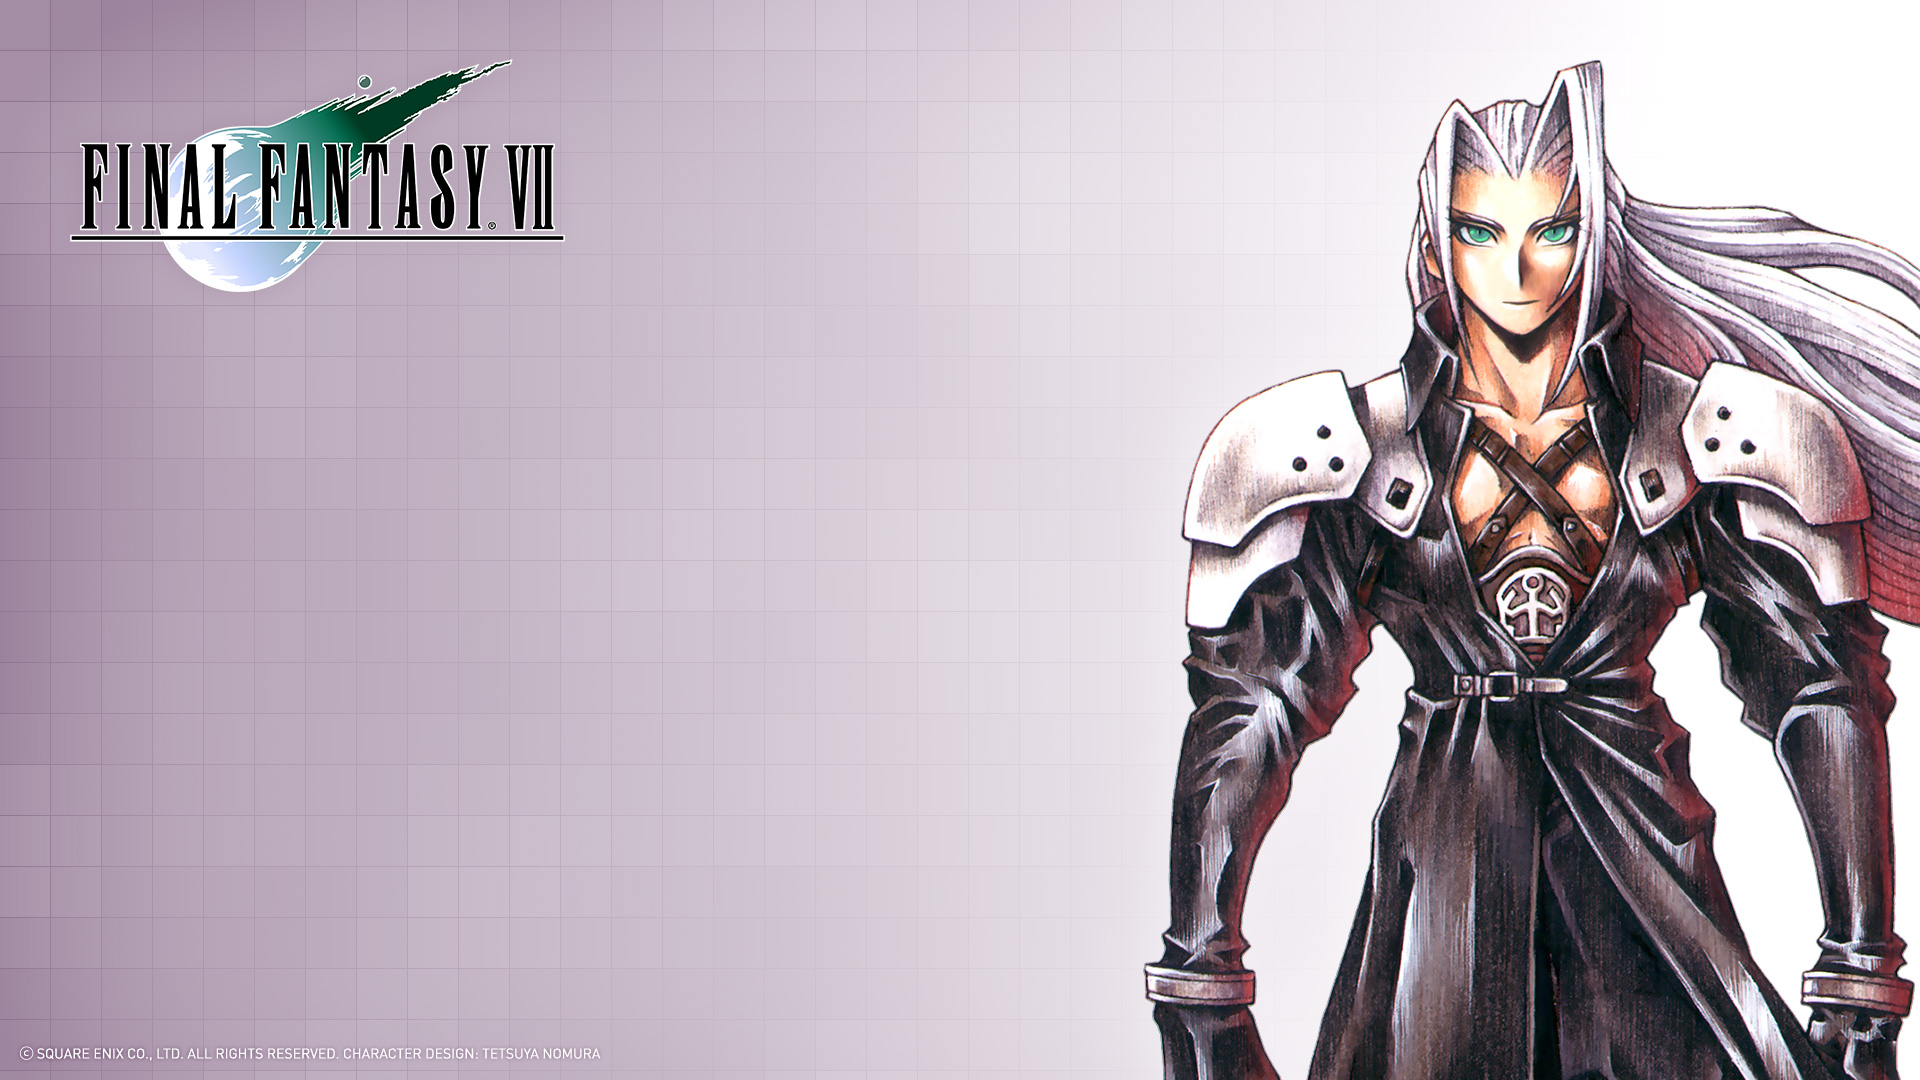 Sephiroth Ffvii Official Wallpaper Hd Wallpaper Background Image